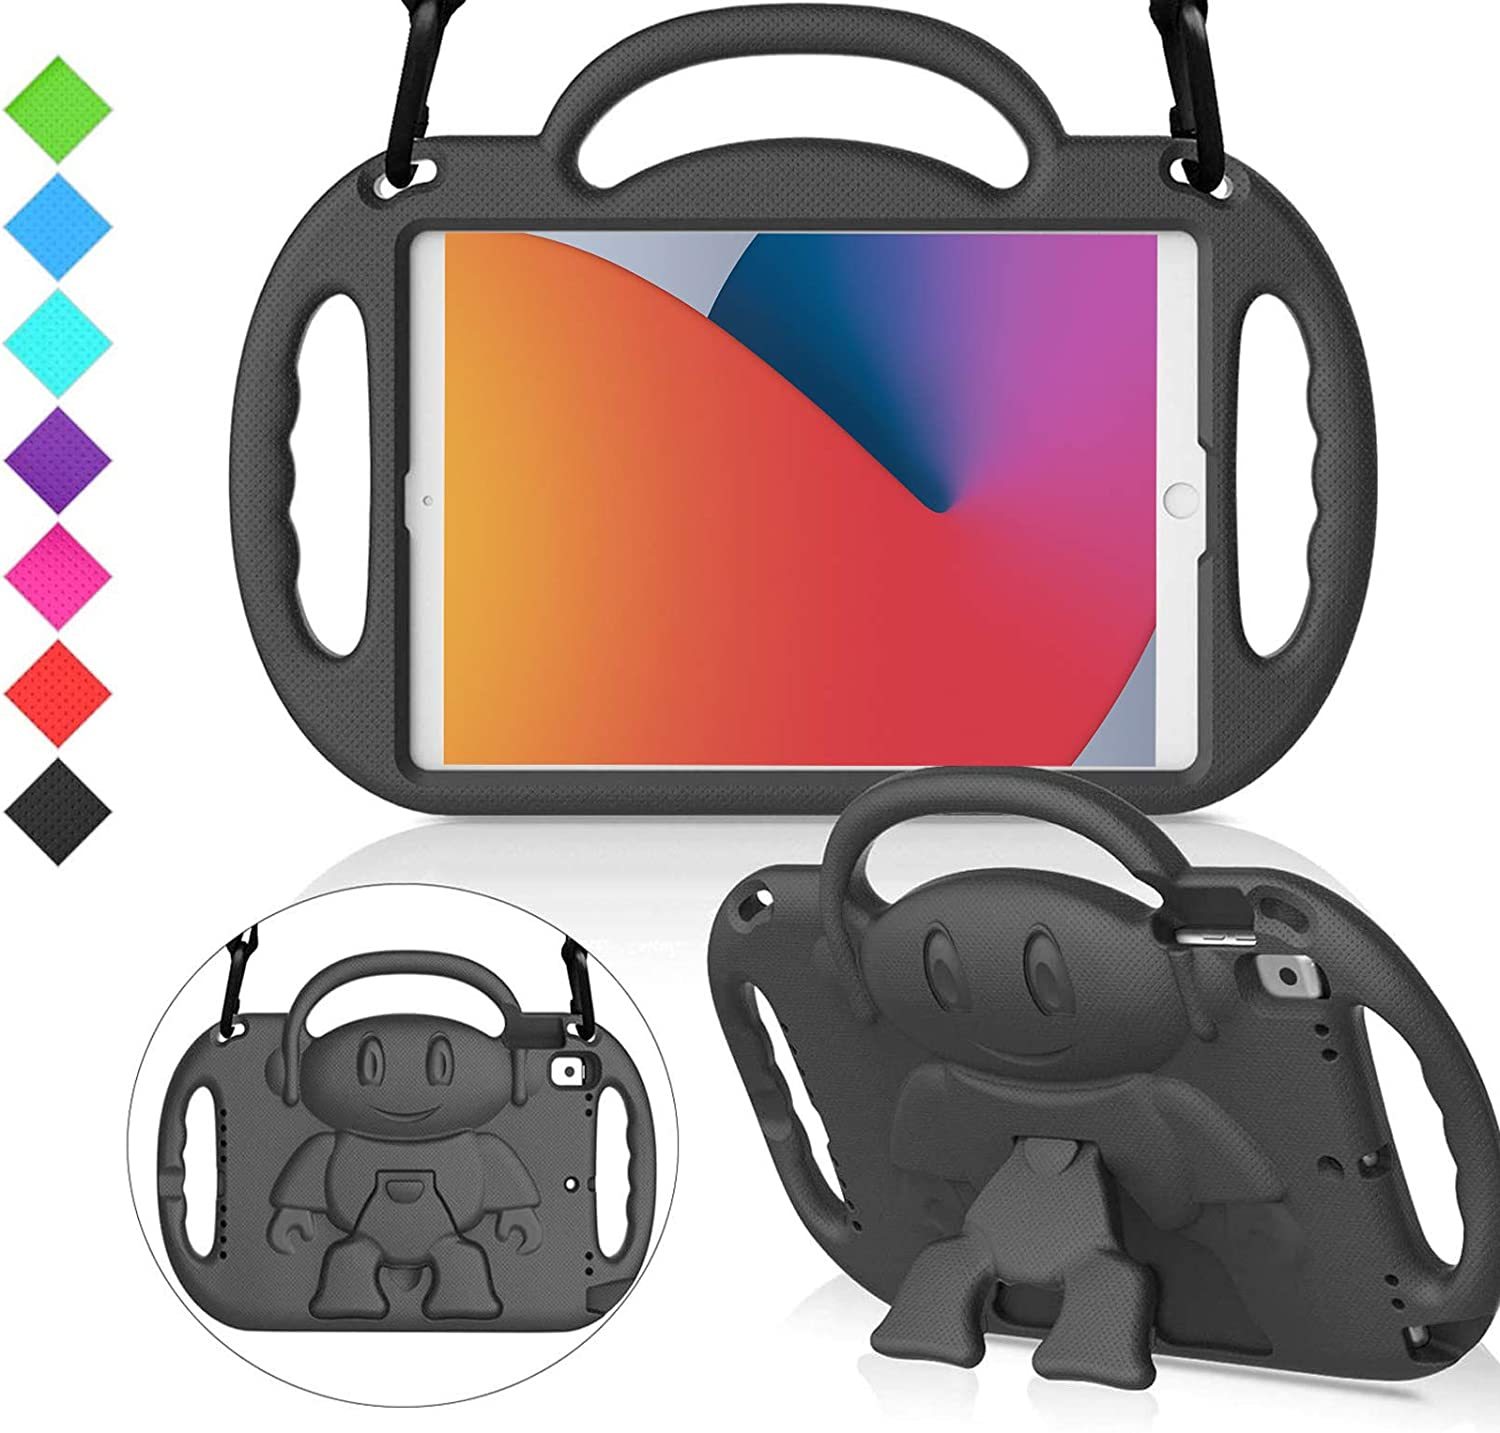 "MENZO Kids Case for New iPad 10.2"" 8th / 7th Generation 2020 / 2019, Light Weight Shockproof Shoulder Strap Handle Stand Case for New iPad 10.2-Inch 2019 / 2020 Released (Latest Model) -Black"